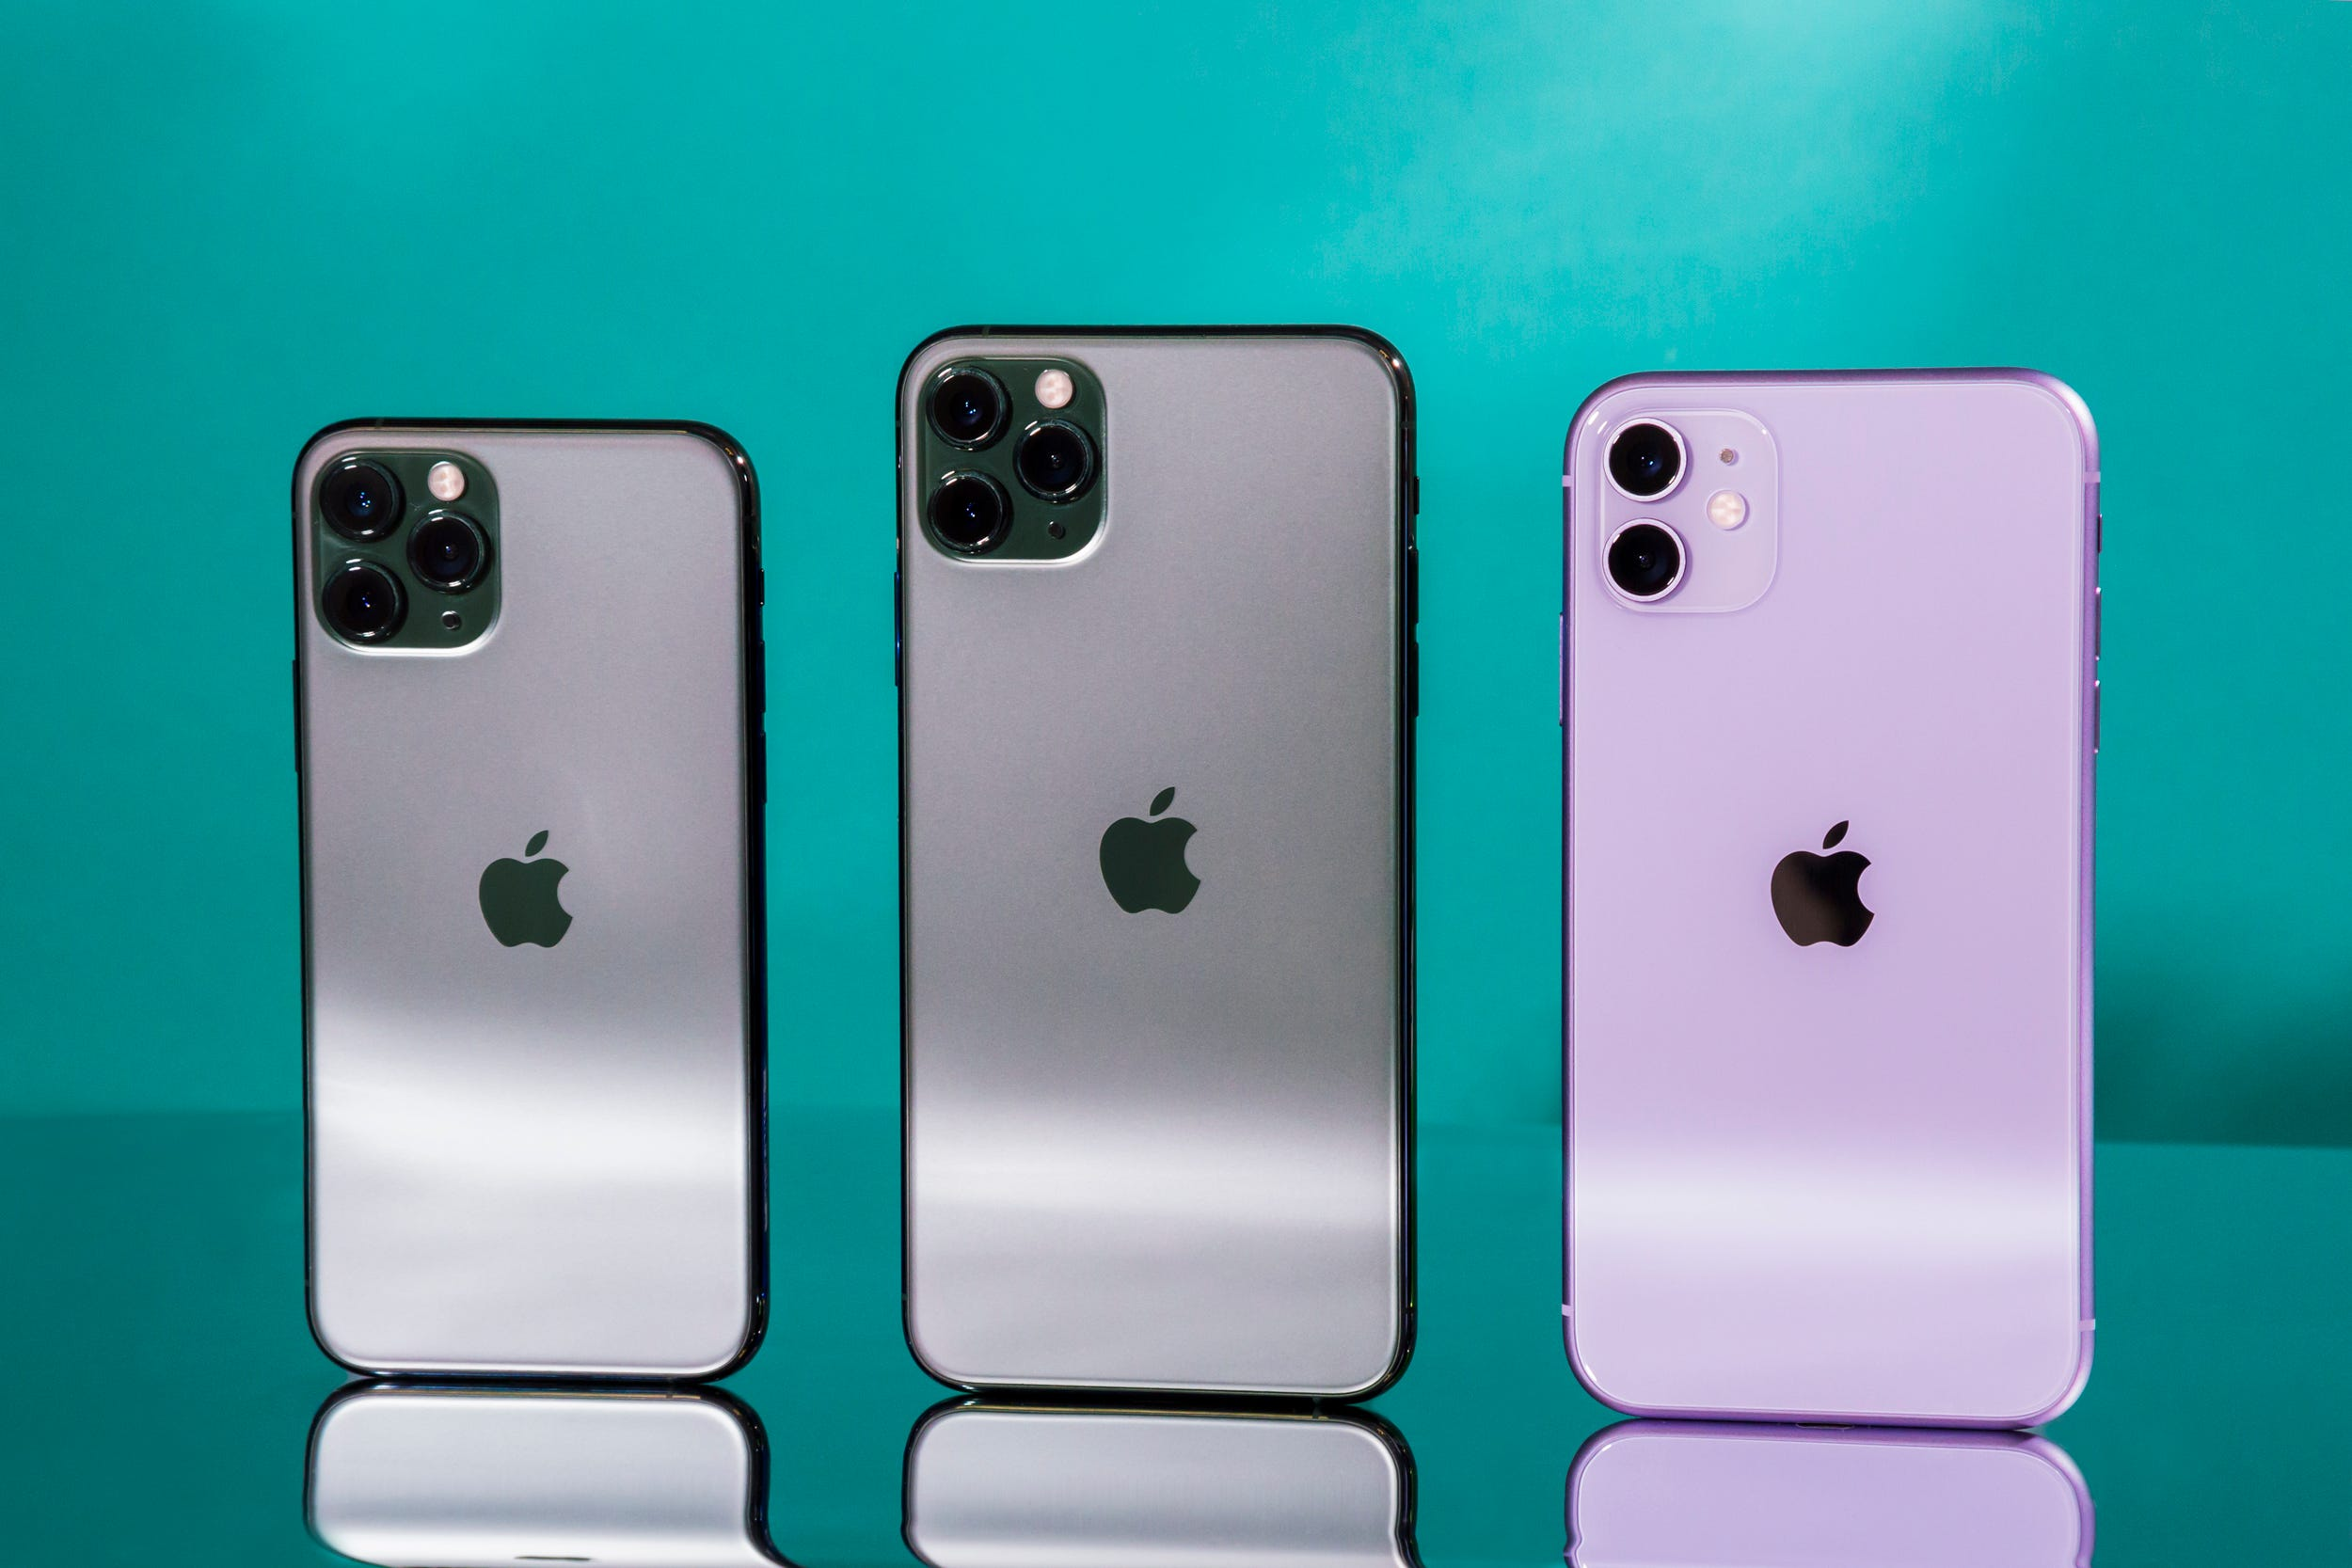 the iPhone 8 could be delayed and arrive after the iPhone 7s and iPhone 7s Plus